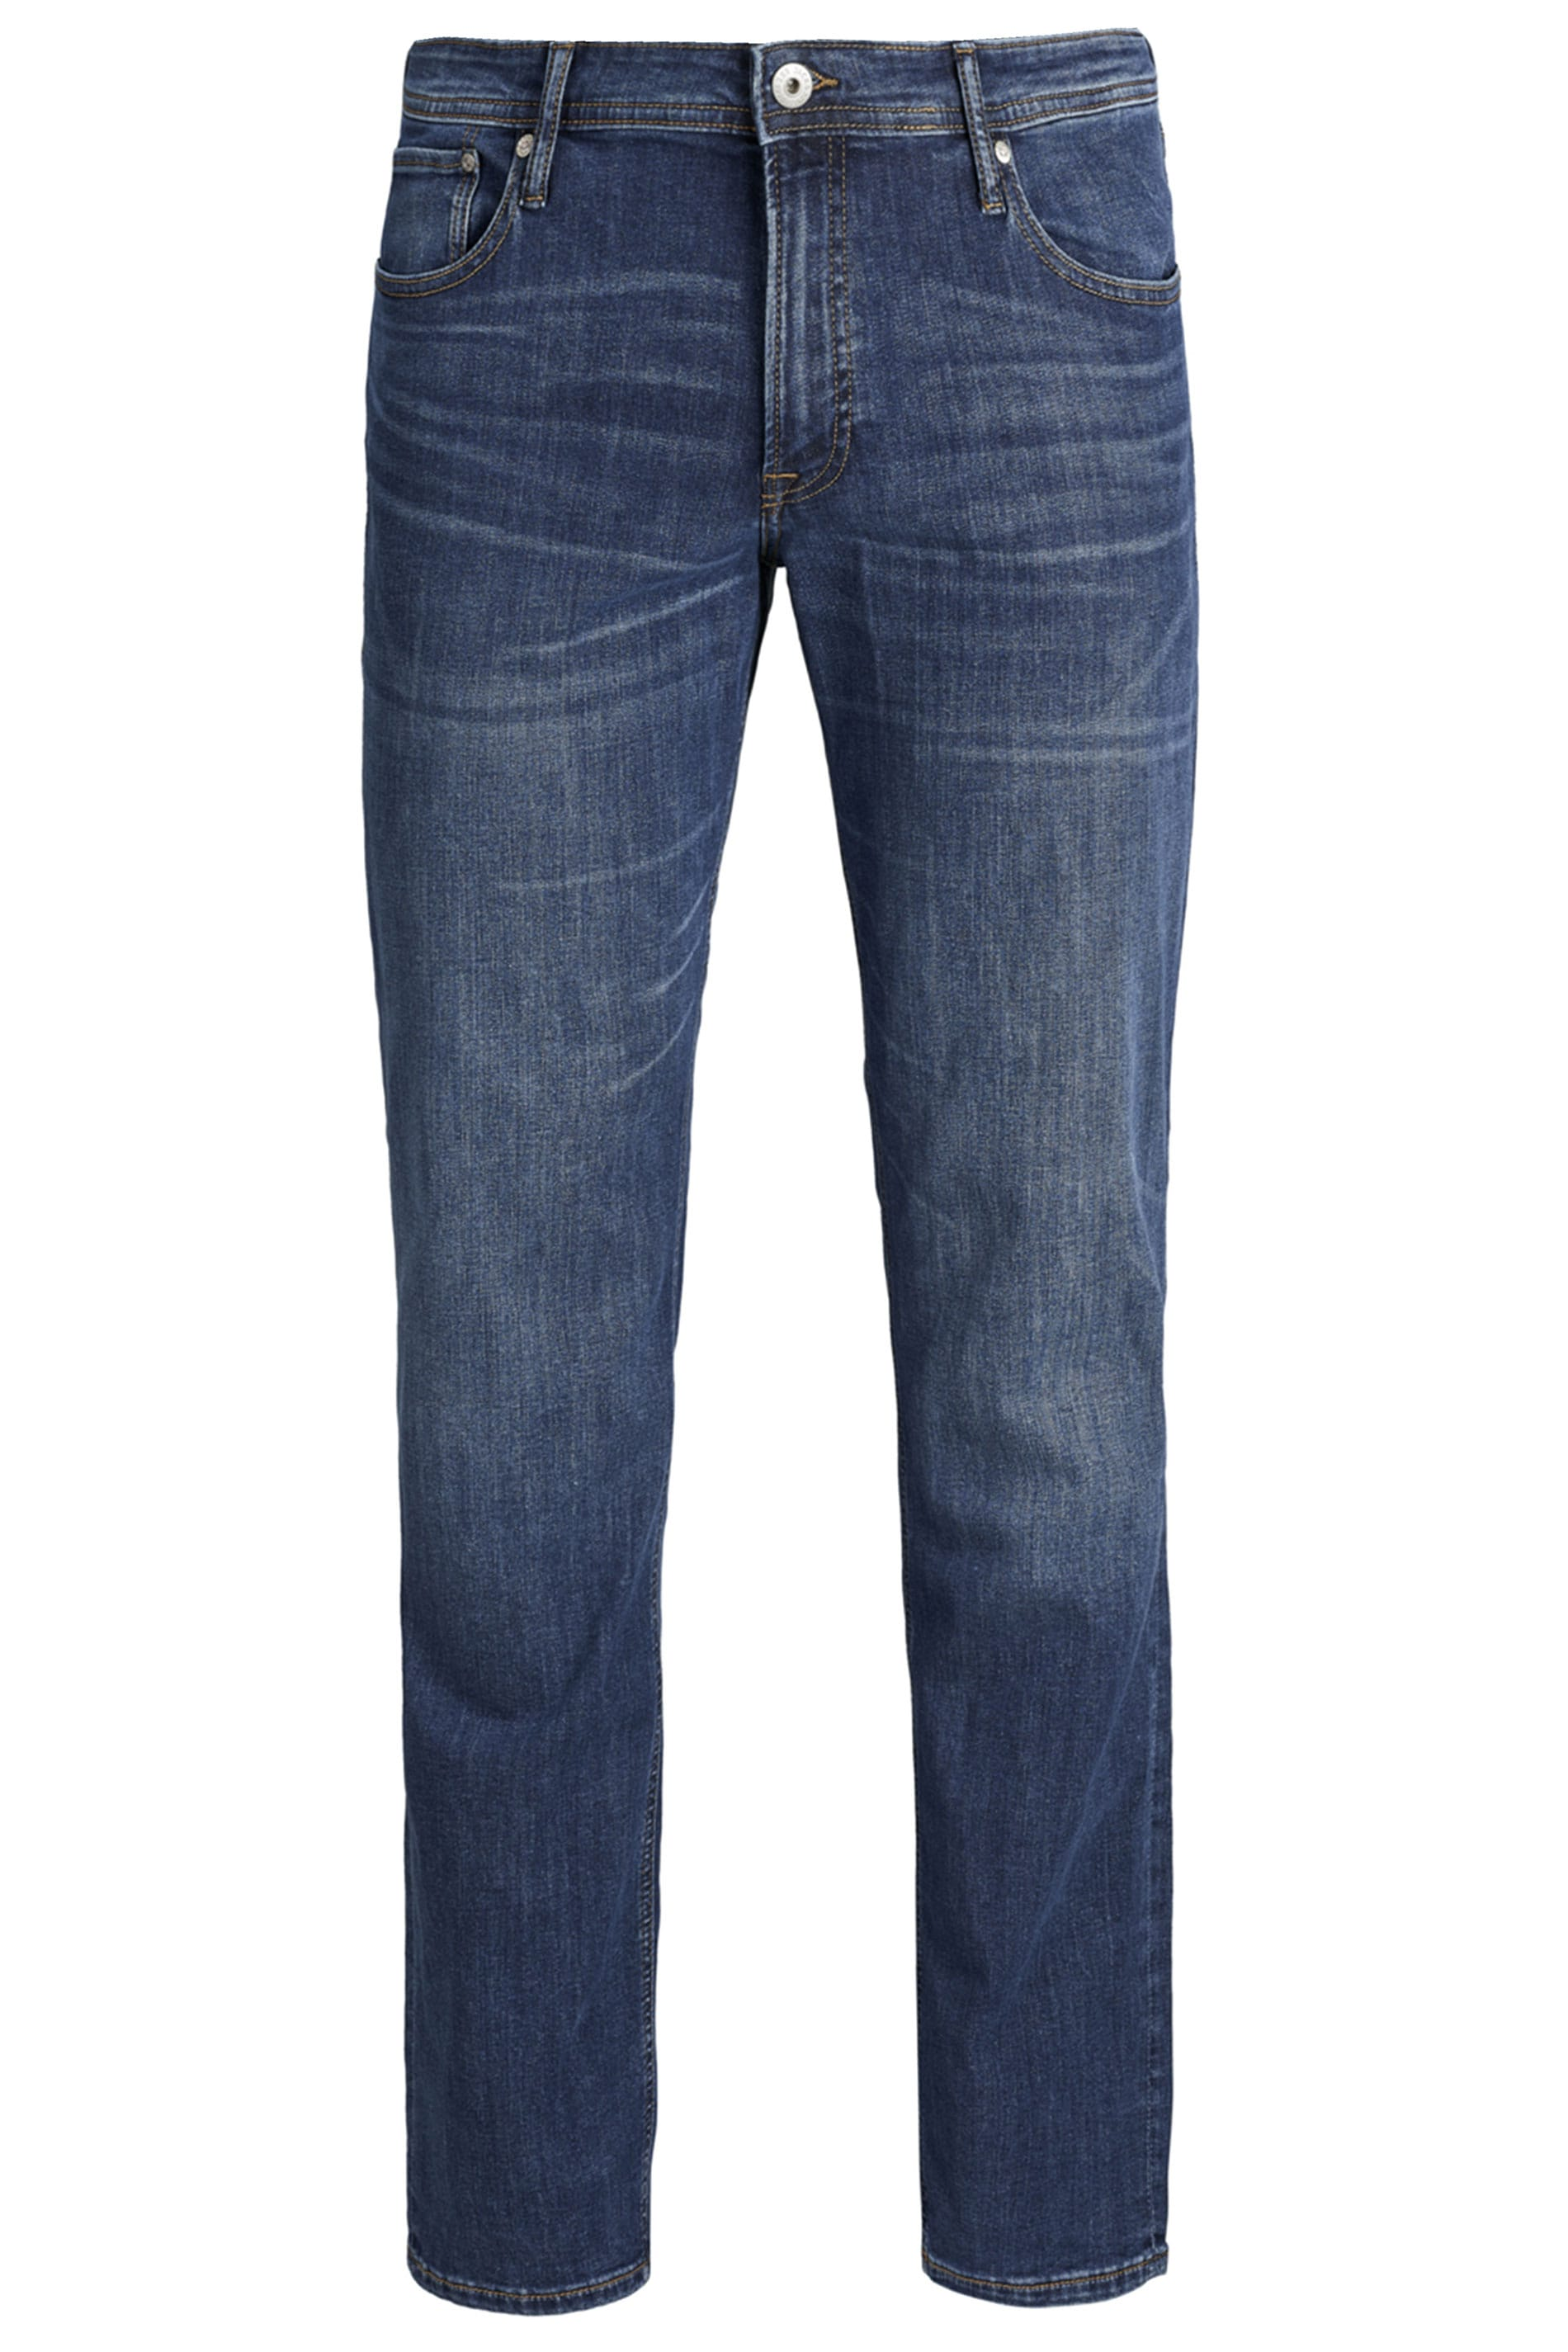 JACK & JONES Blue Straight Leg Jeans